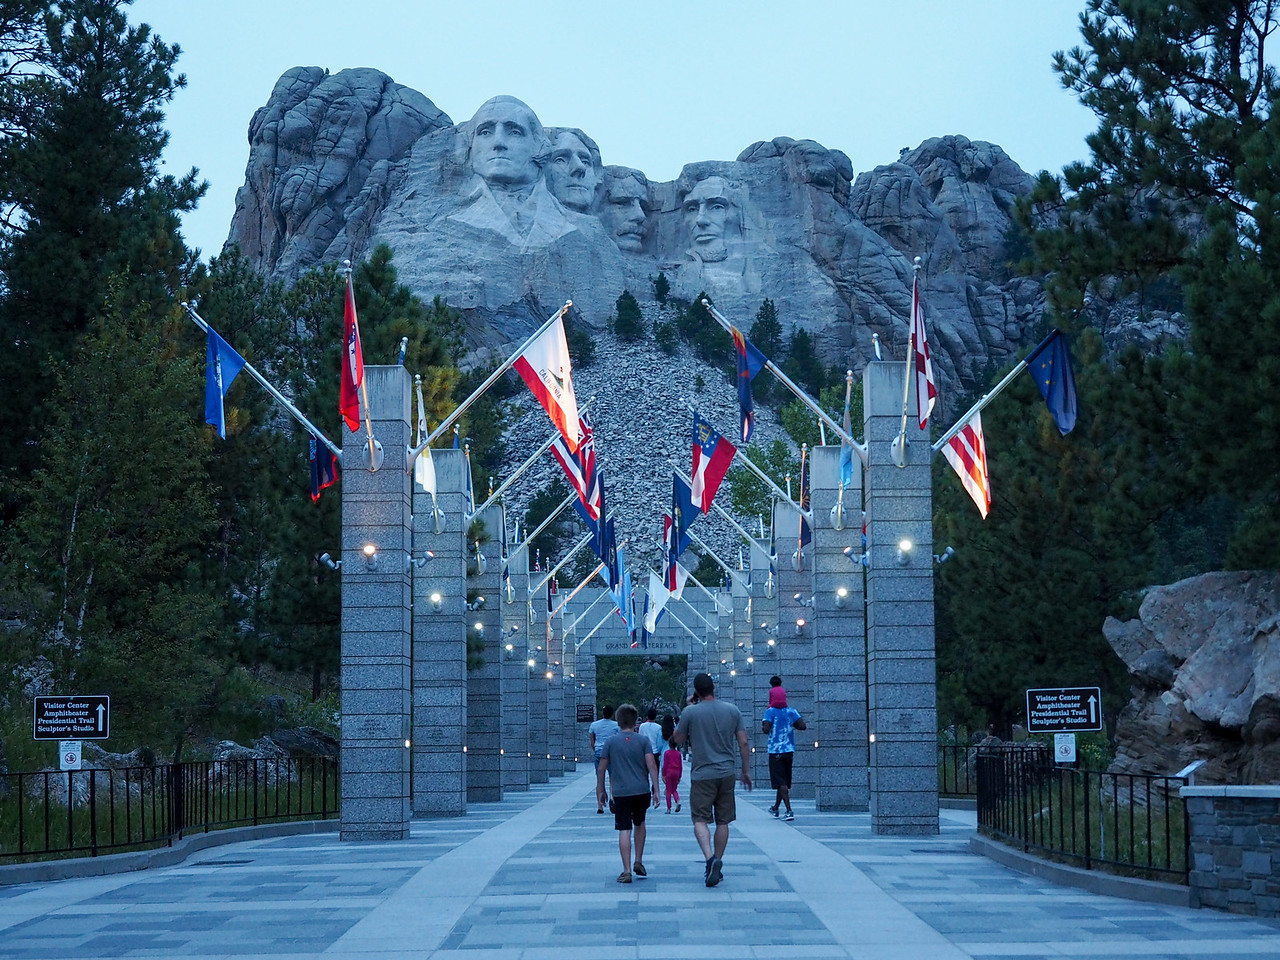 Mount Rushmore at dusk